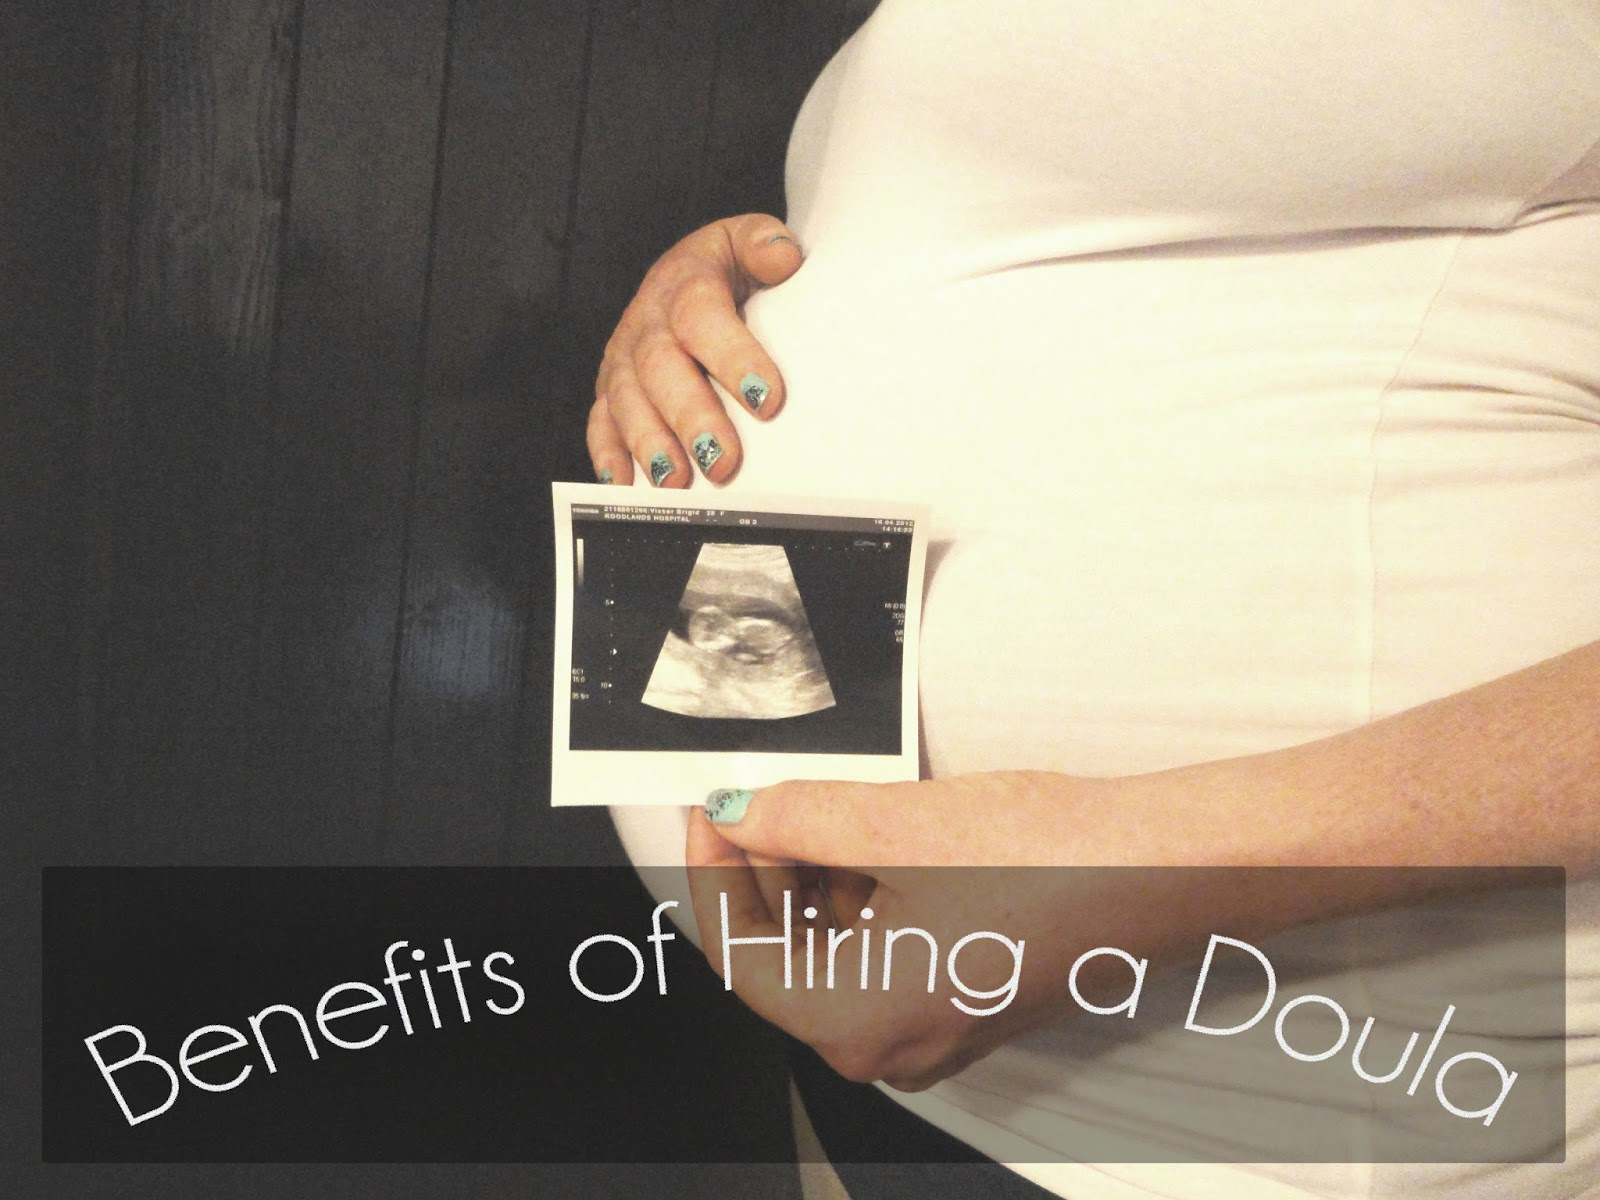 Benefits of Hiring a Doula